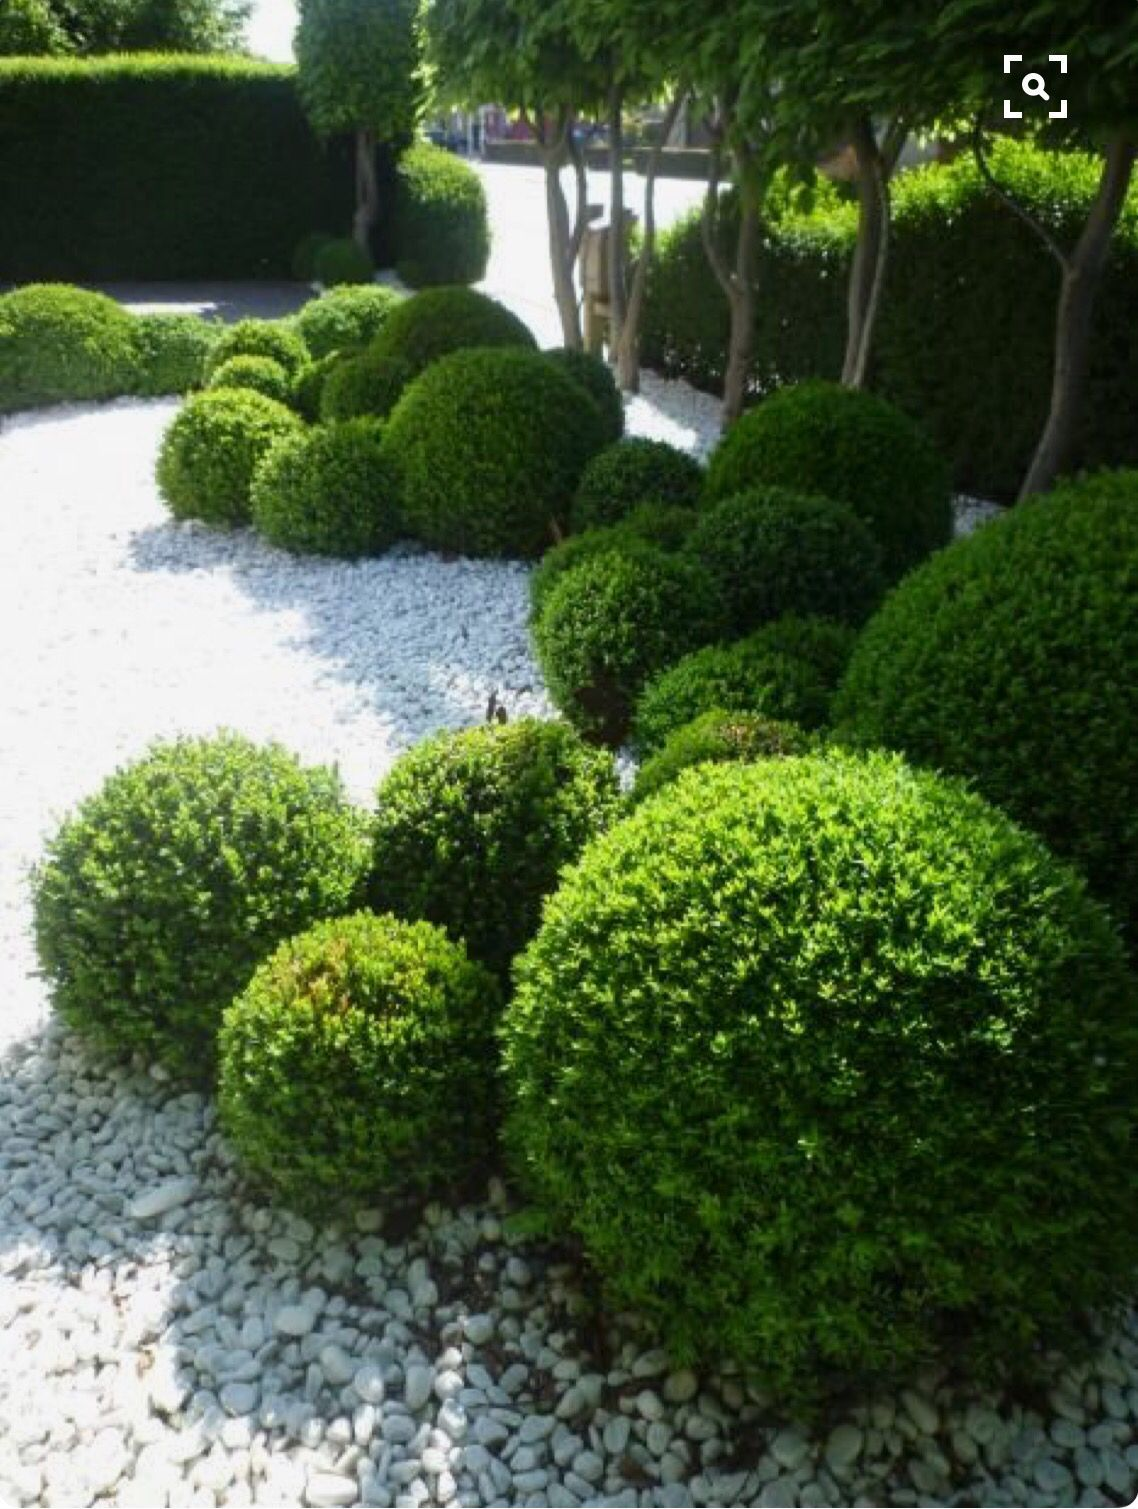 Balls Of Topiary In A Modern Minimalist Garden Design